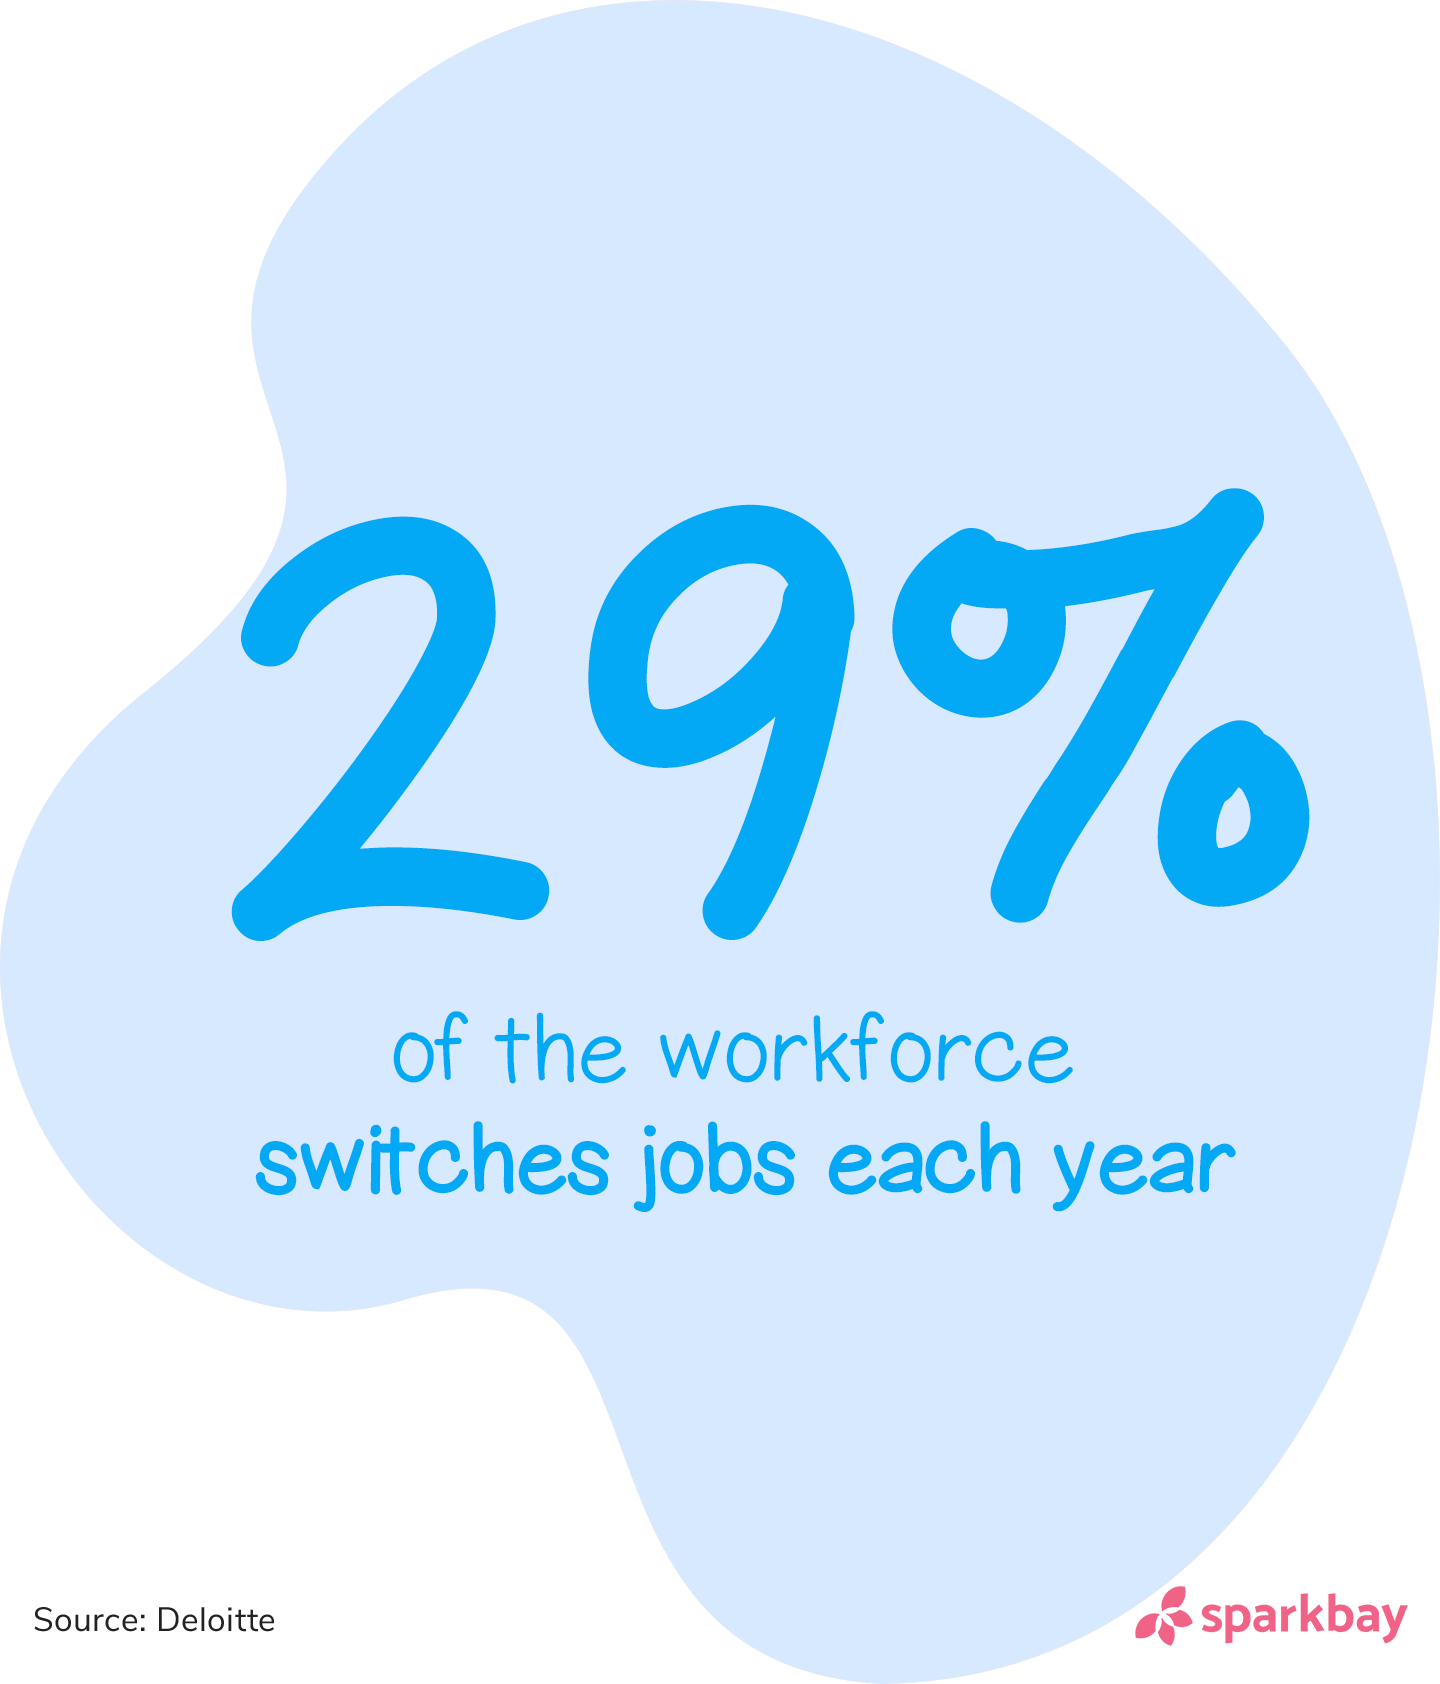 Employee turnover statistics: 25% of the workforce switches jobs each year.